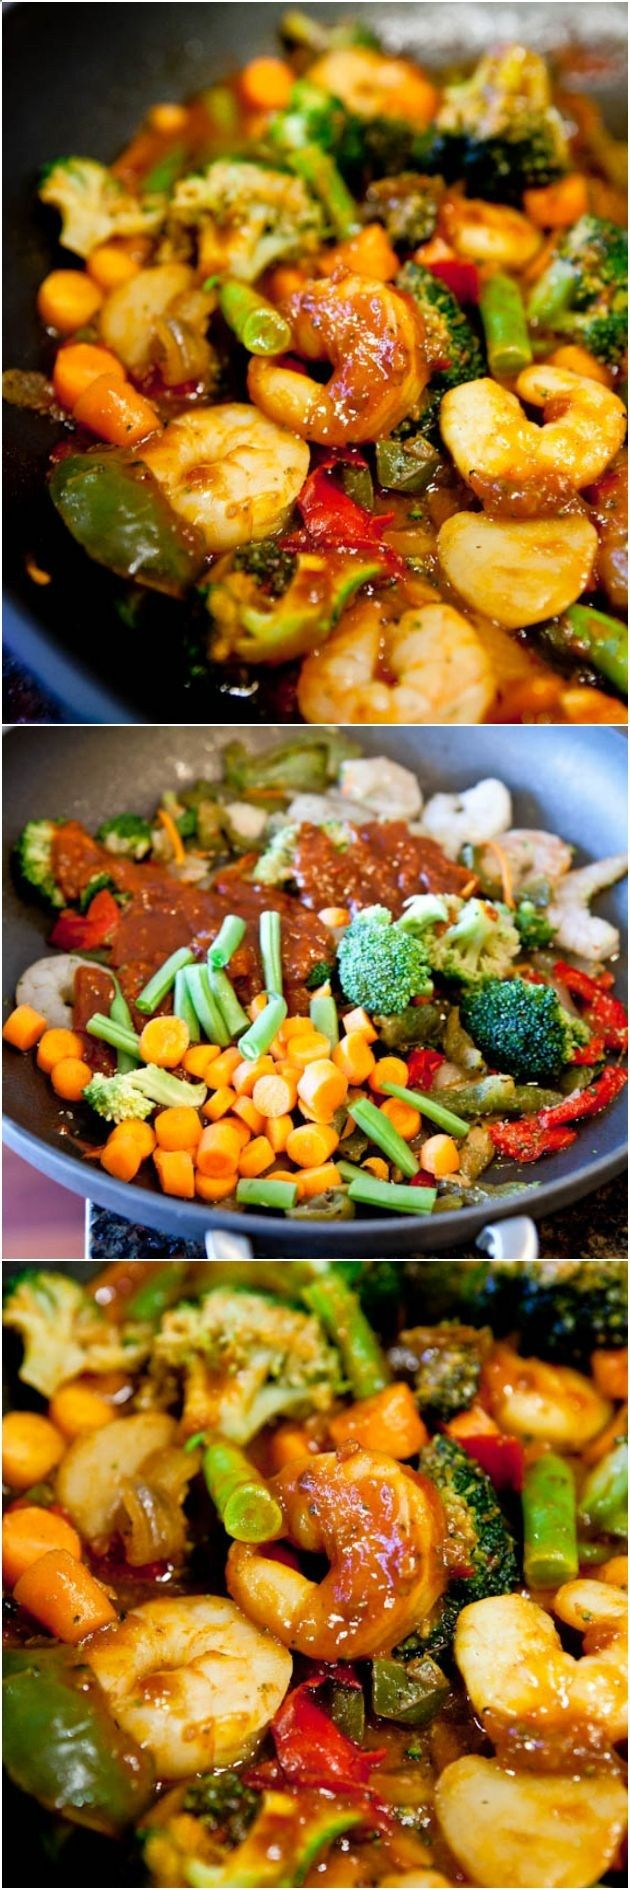 Szechuan Shrimp Stir Fry with Fried Rice (GF) - Packed with flavor, healthy so easy to make! Who needs takeout when you can DIY in 15 minutes! .